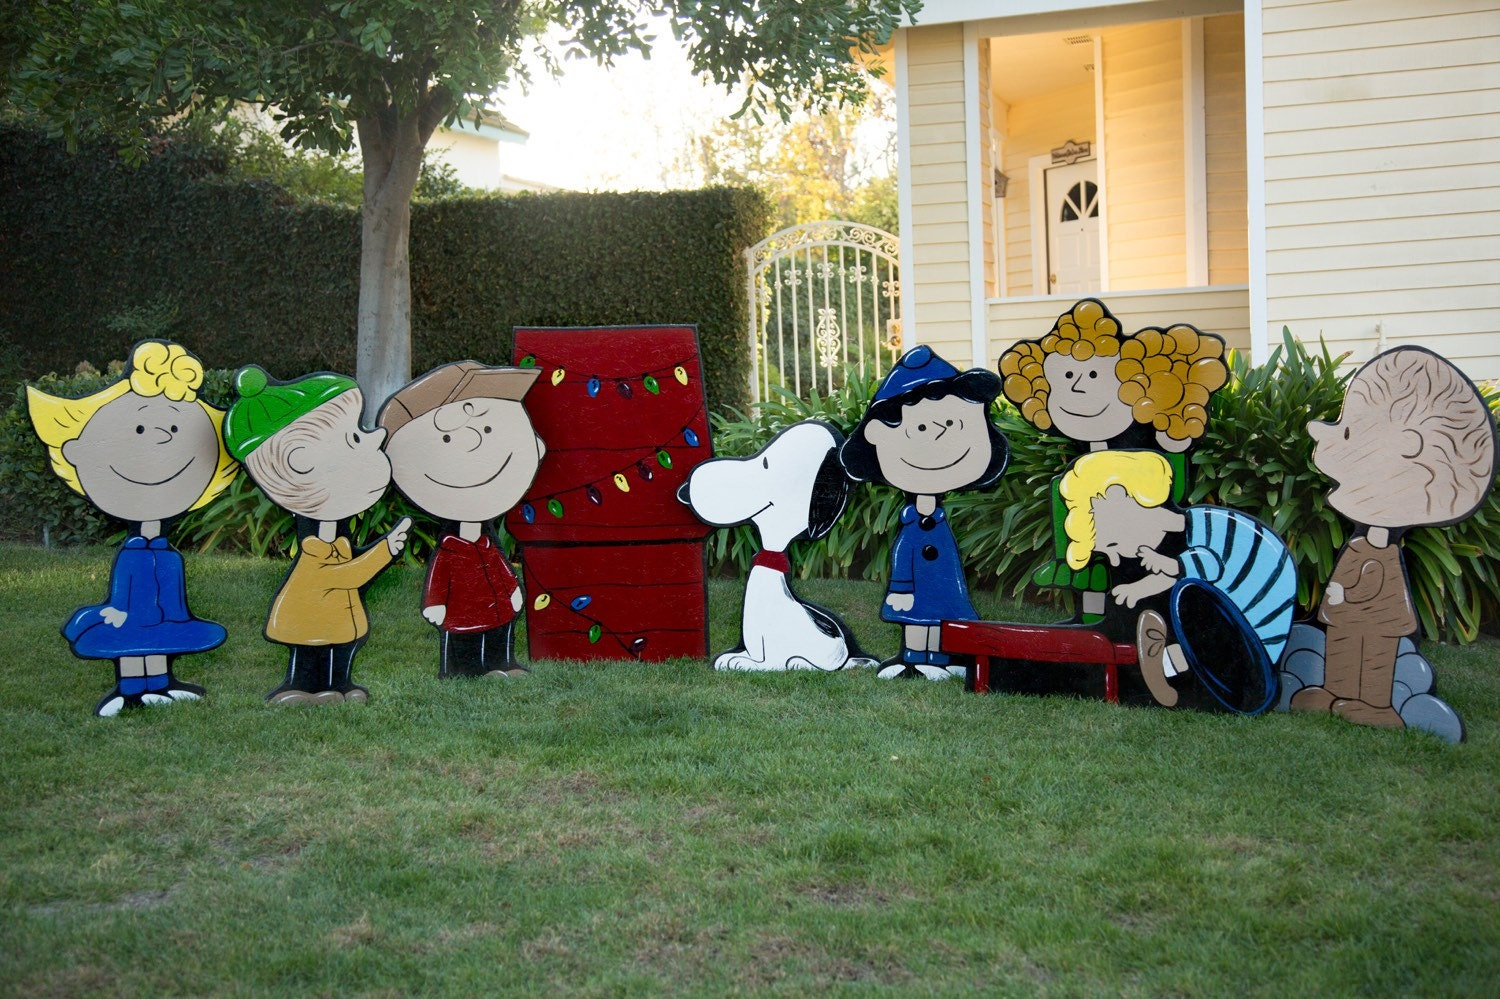 Charlie brown christmas lawn decorations for Christmas lawn decorations